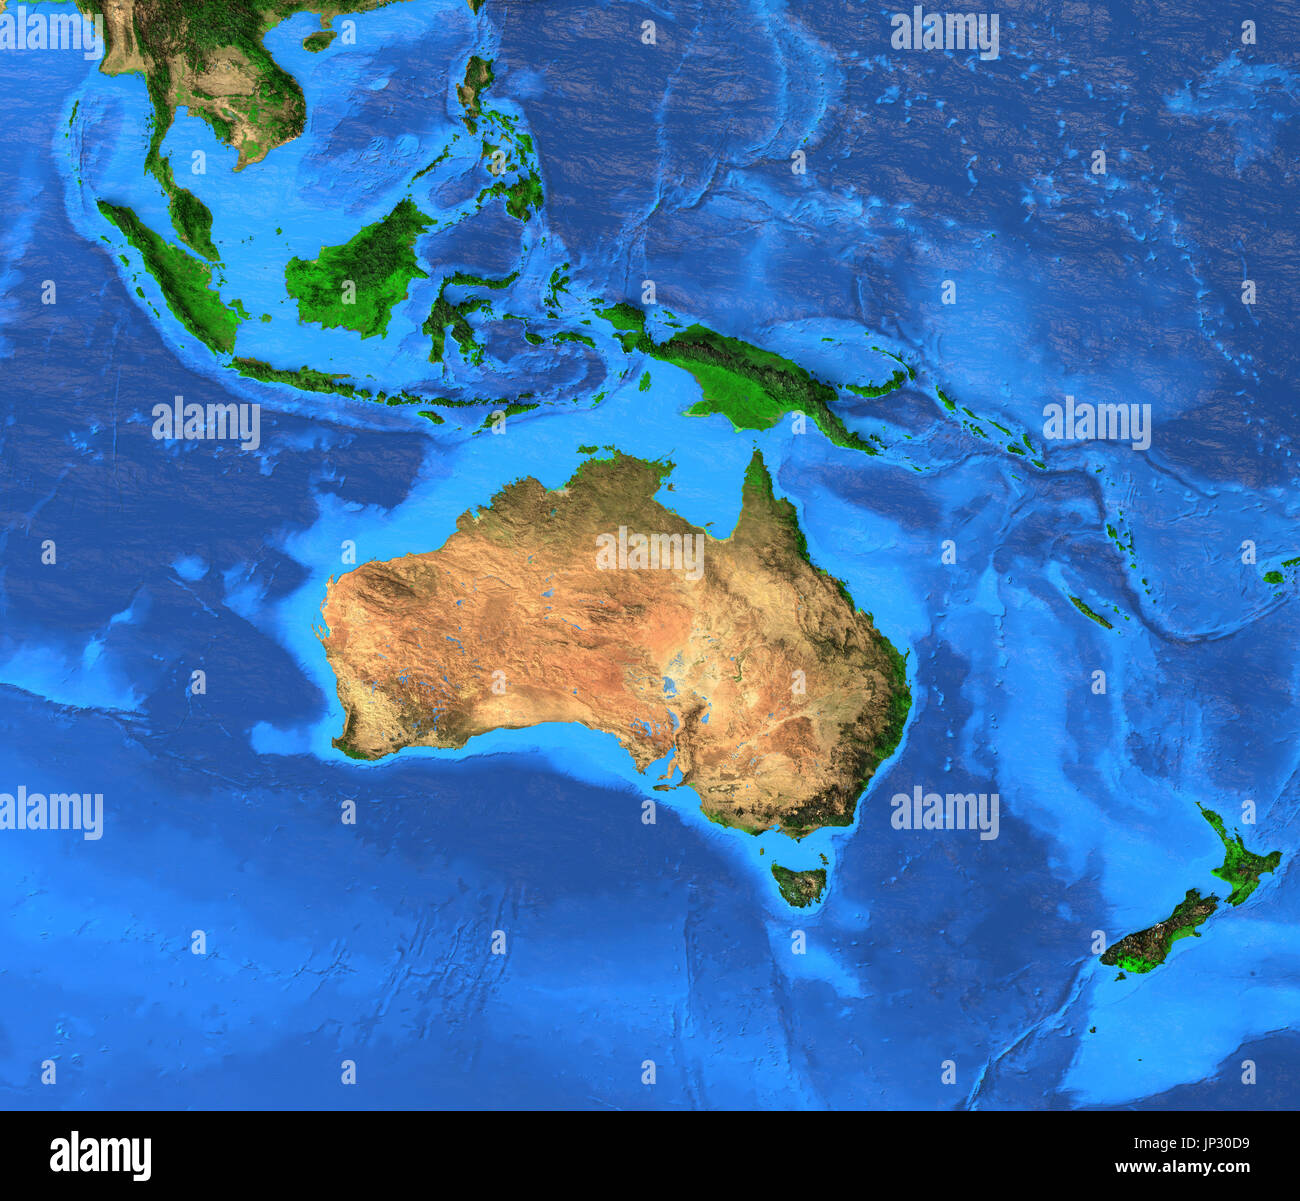 Oceania map - Australasia, Polynesia, Melanesia, Micronesia region. Detailed satellite view of the Earth and its landforms. Elements of this image fur - Stock Image